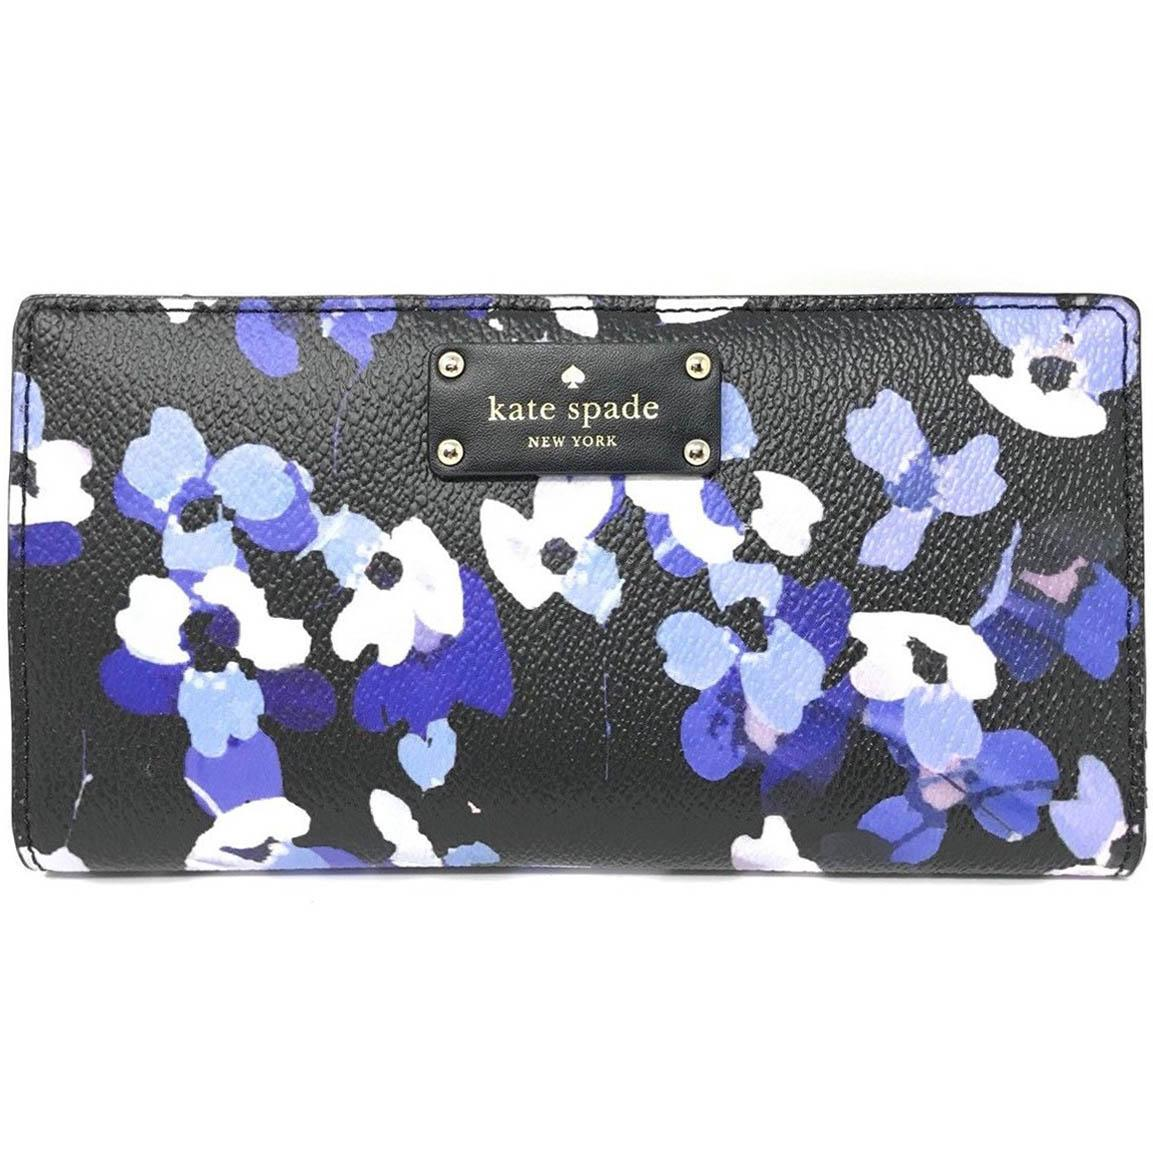 Compare Kate Spade Grove Street Printed Stacy Wallet Black Blue Flowers Wlru3006 Gift Receipt Prices